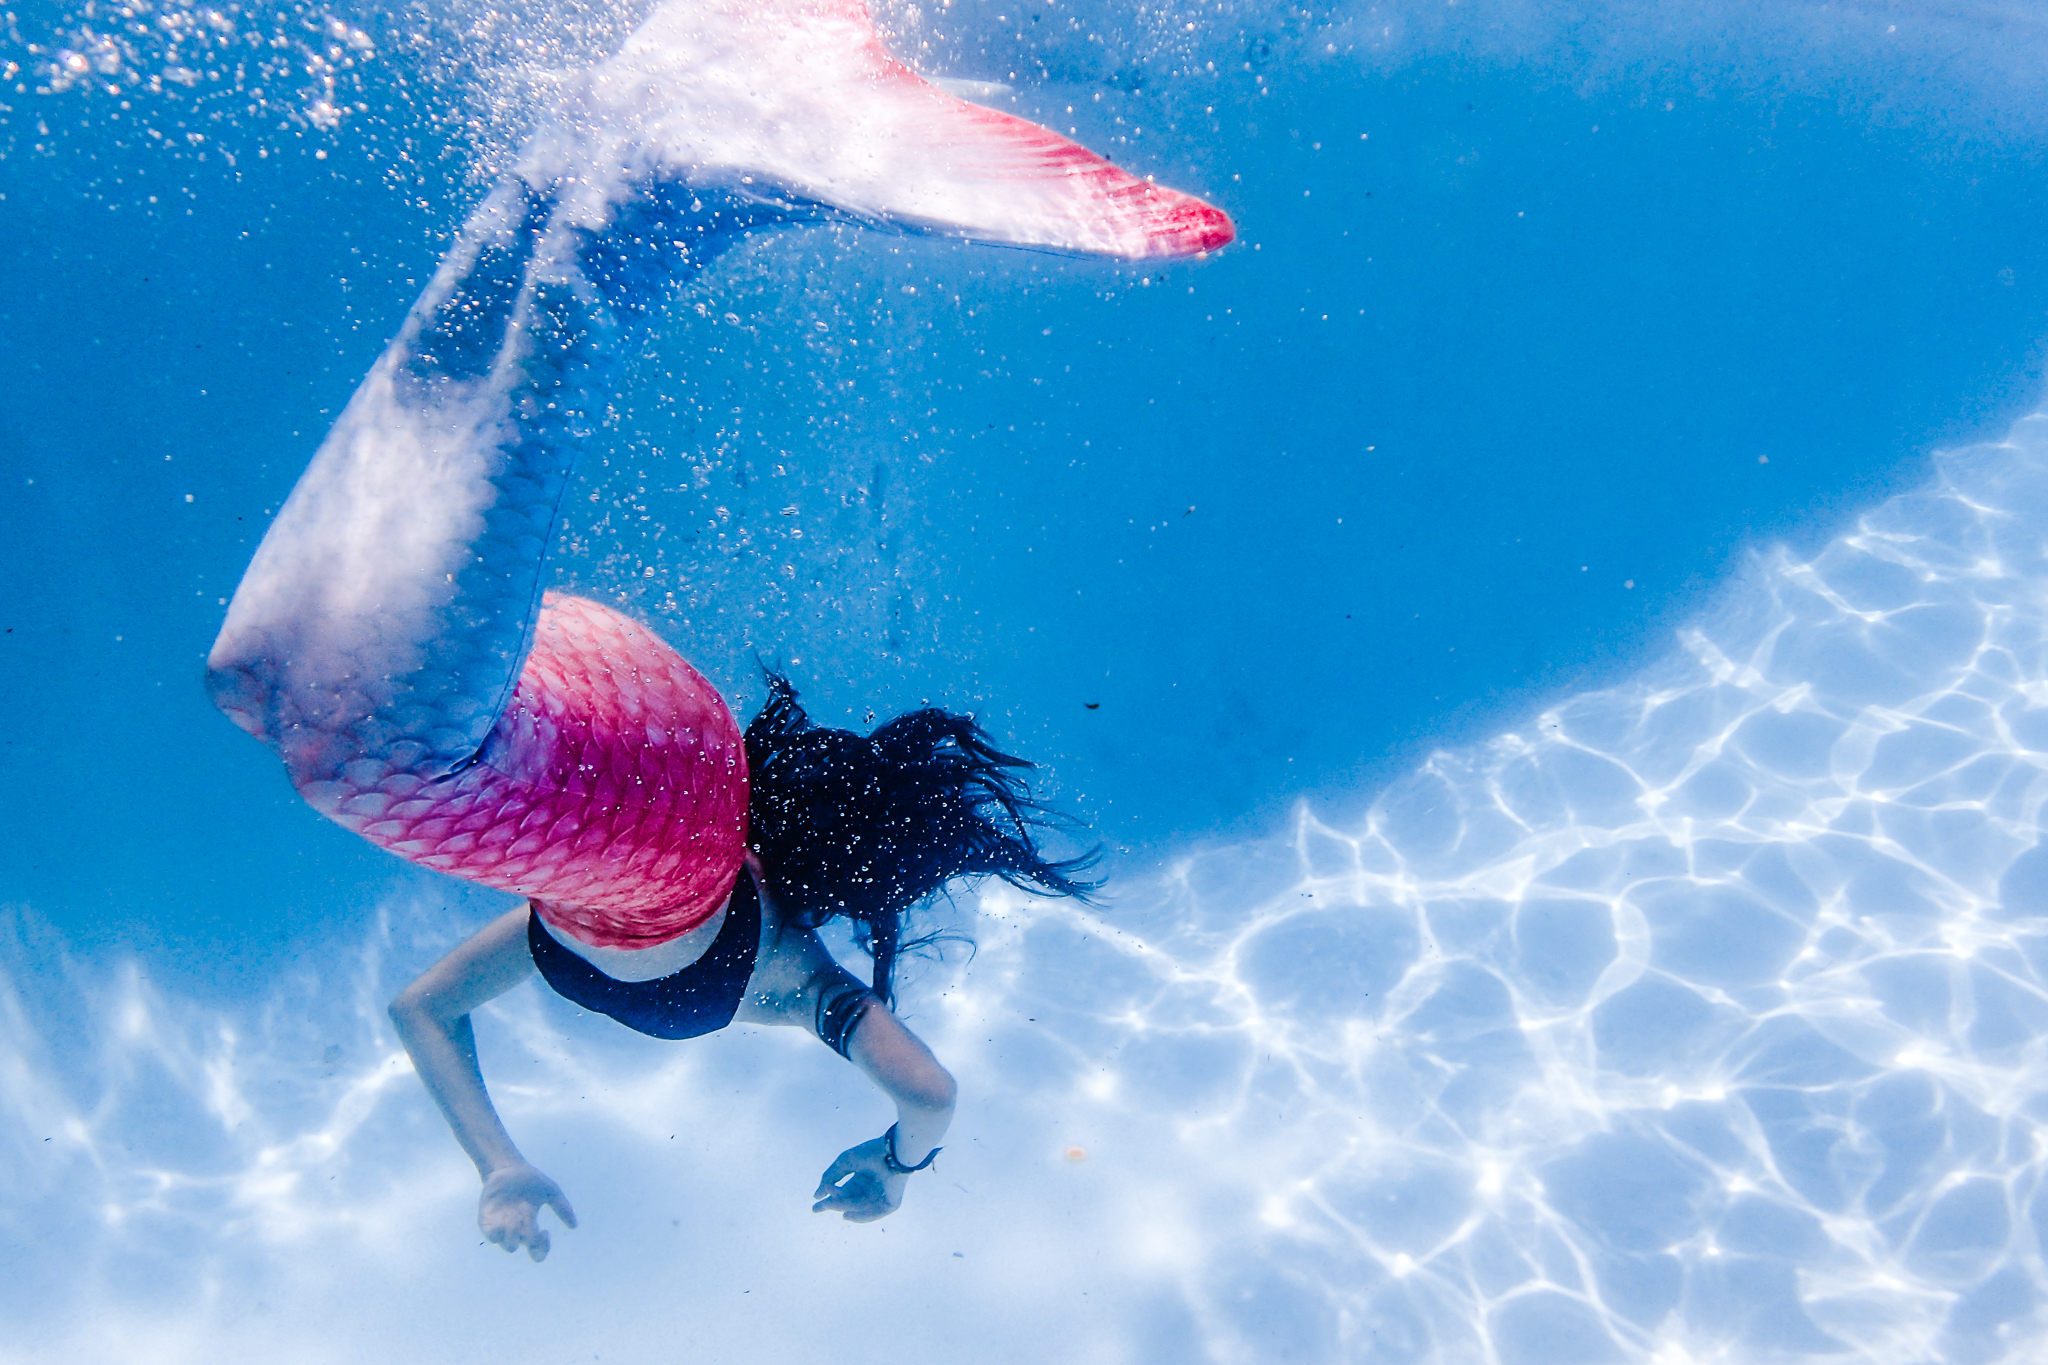 Mermaid | Anika Vodicka and Lenkaland Photography